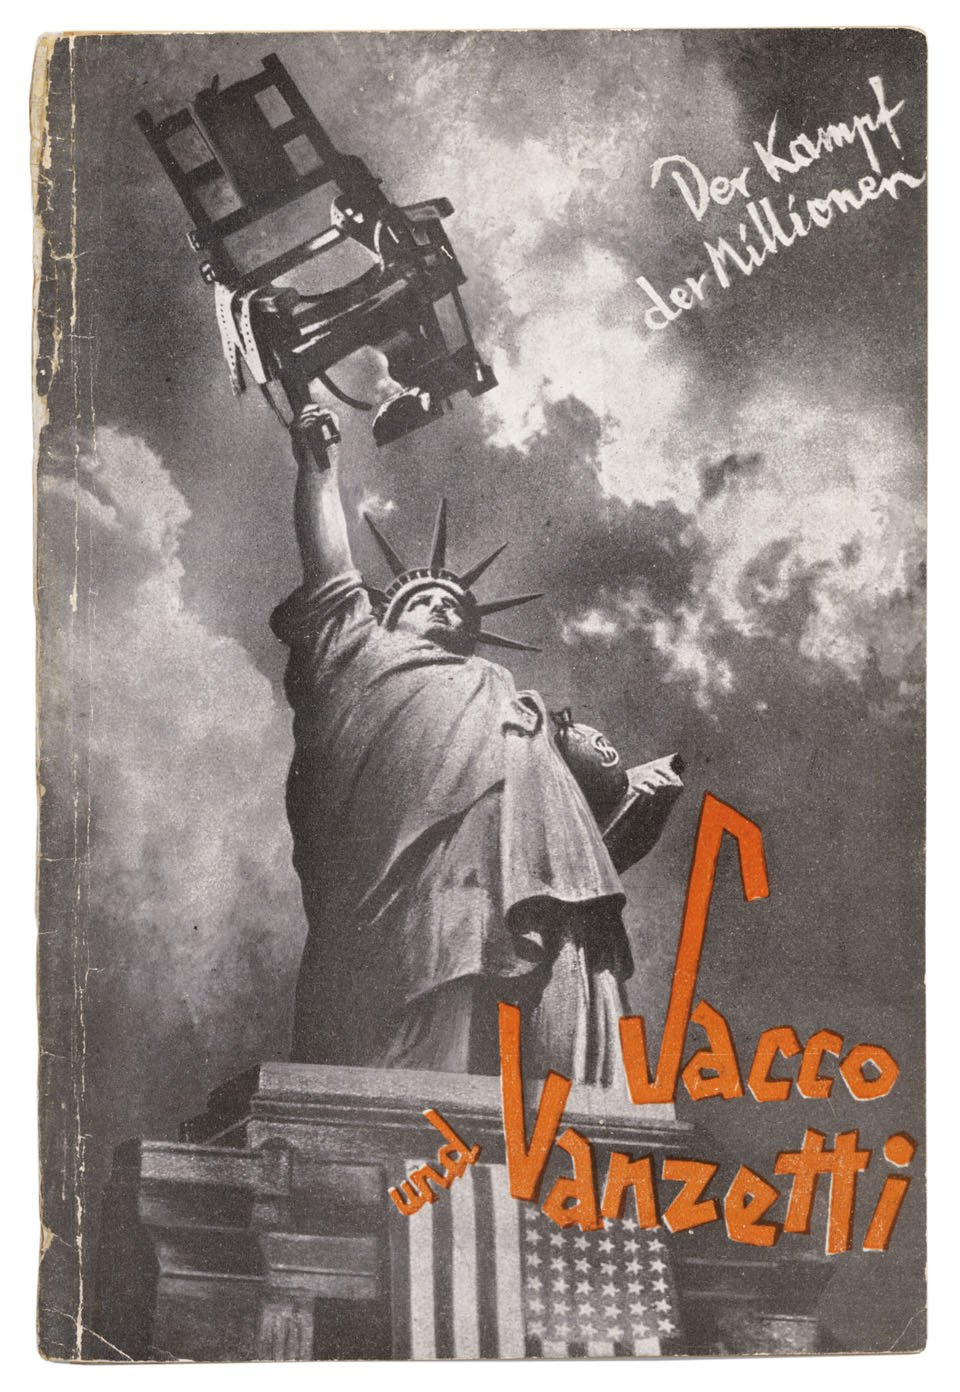 The Daring Degenerate Book Jackets Of The Weimar Republic